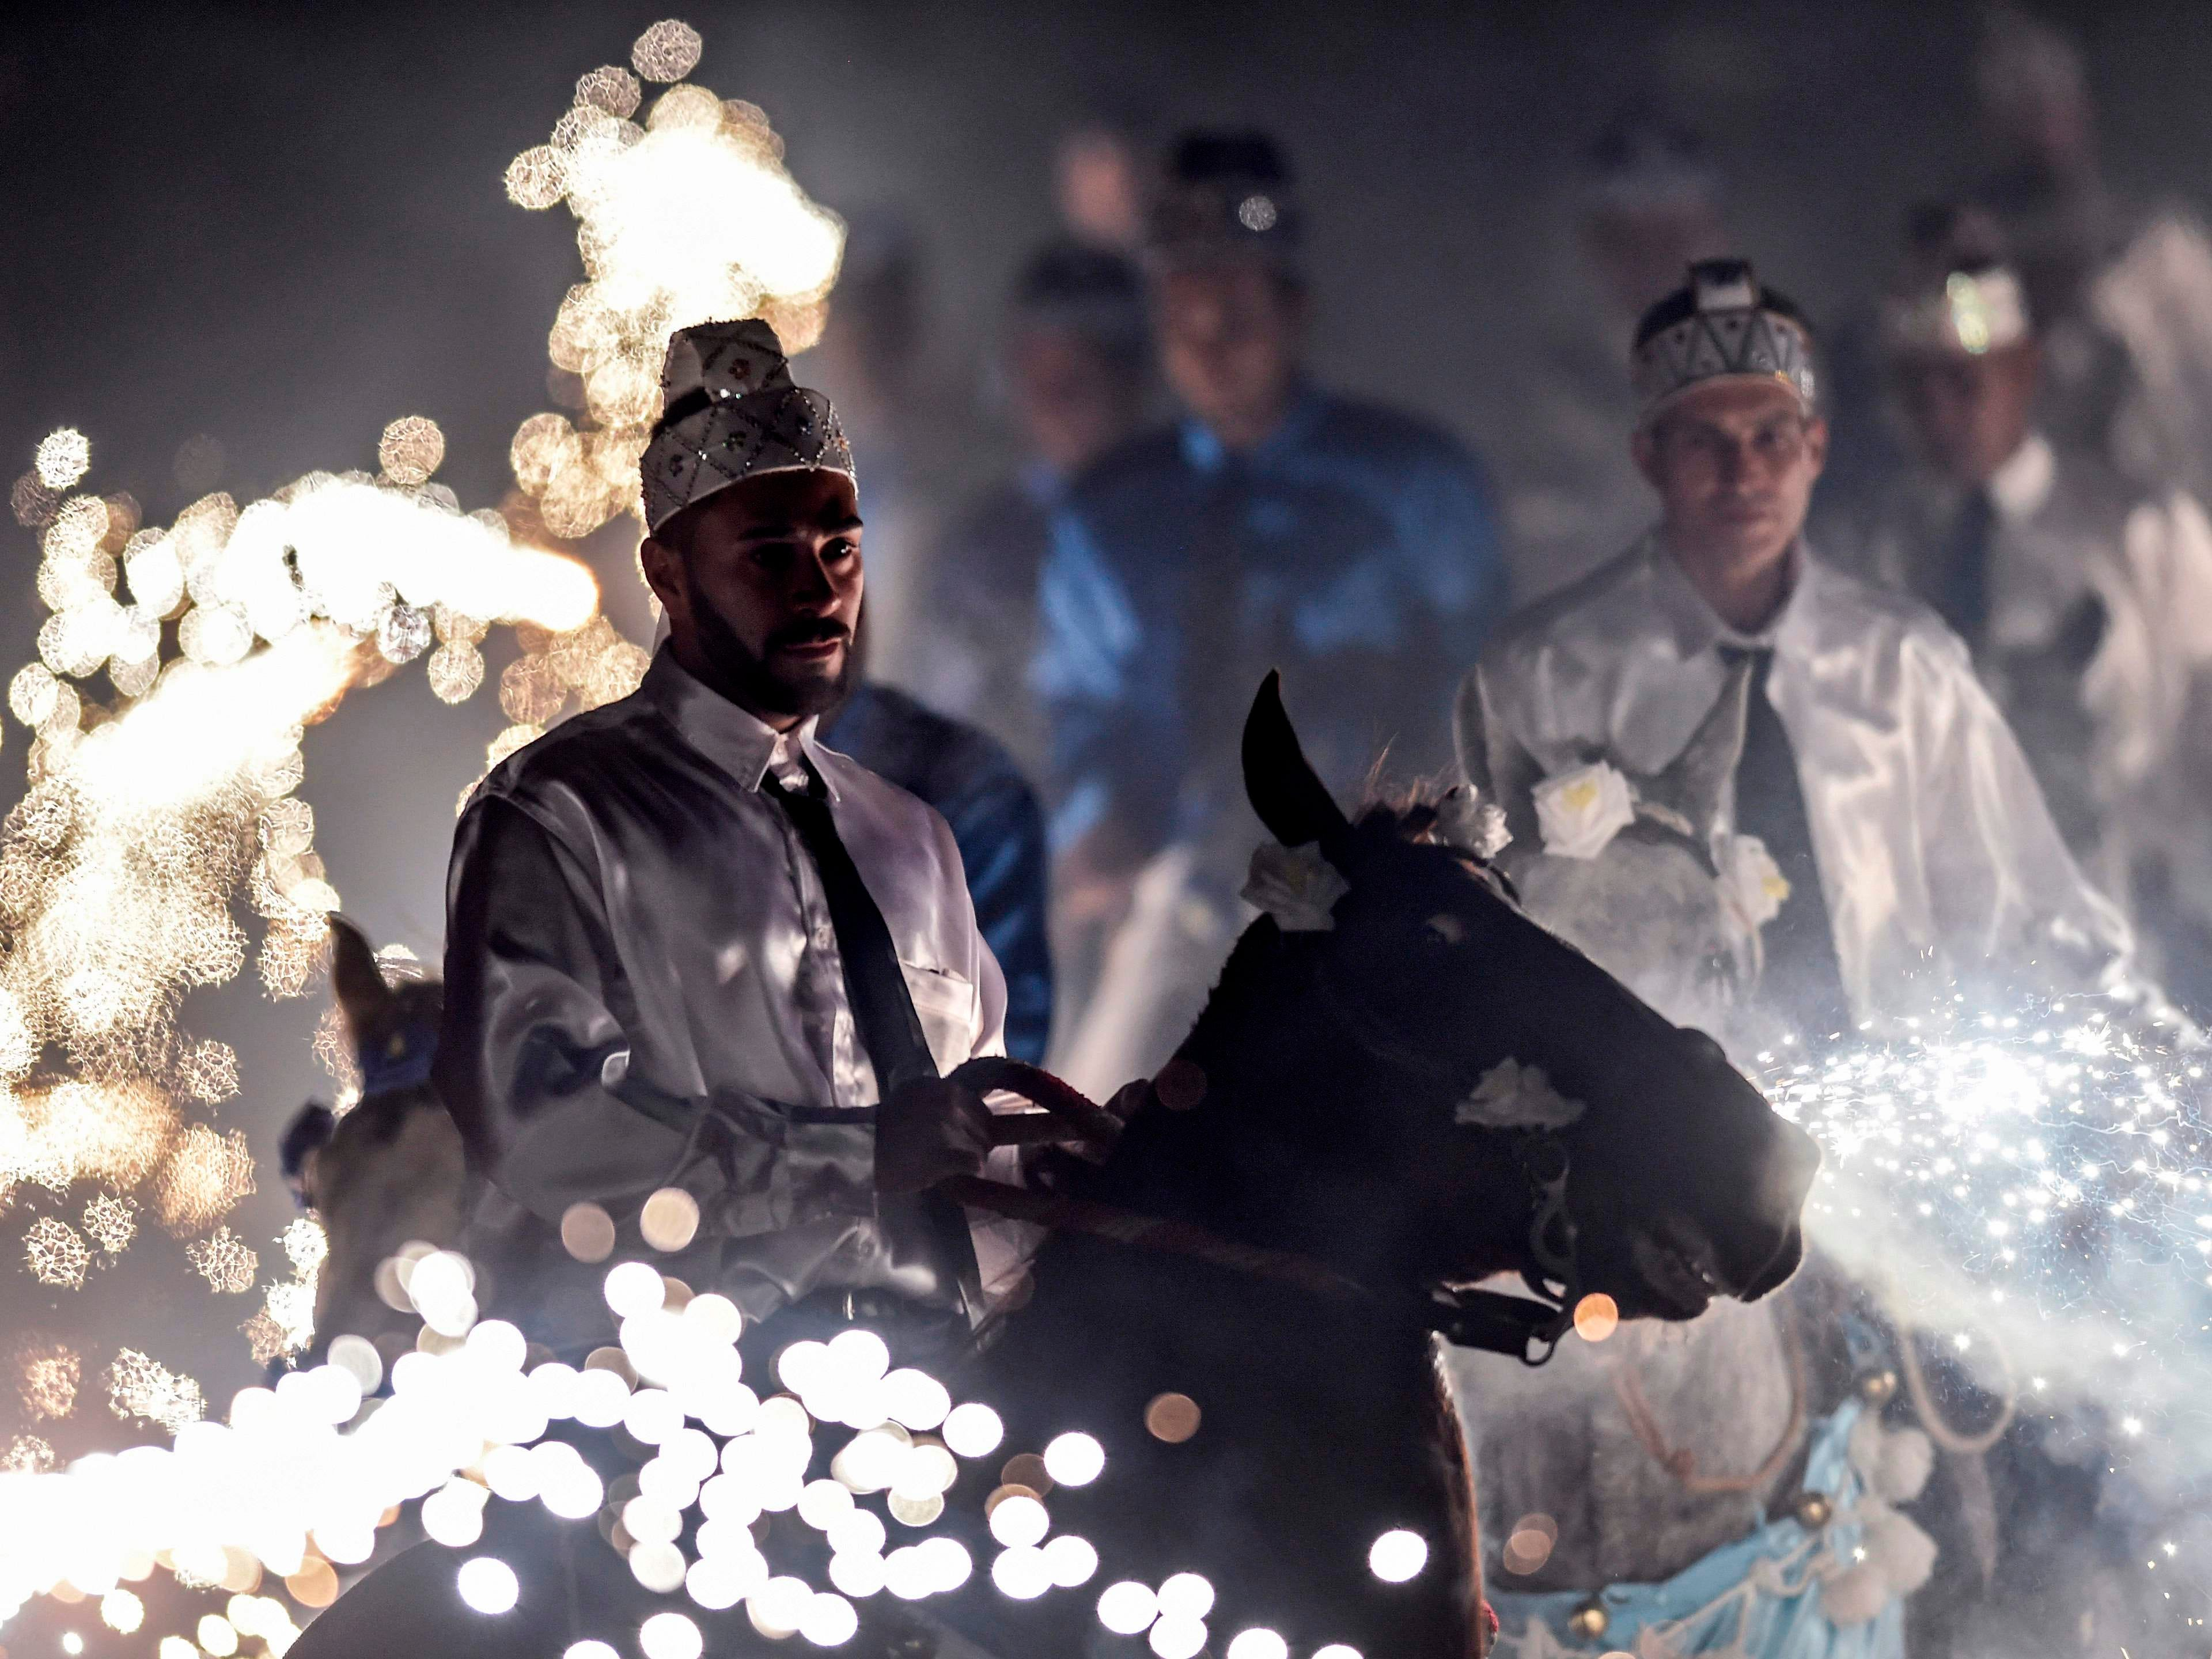 Sept. 7, 2018: Men atop horses take part in Our Lady of Nazareth traditional cavalcade in Morro Vermelho, Brazil. The annual cavalcade, which dates back over 300 years, represents the fight between Christians and Moors, celebrating the victory of Christians.